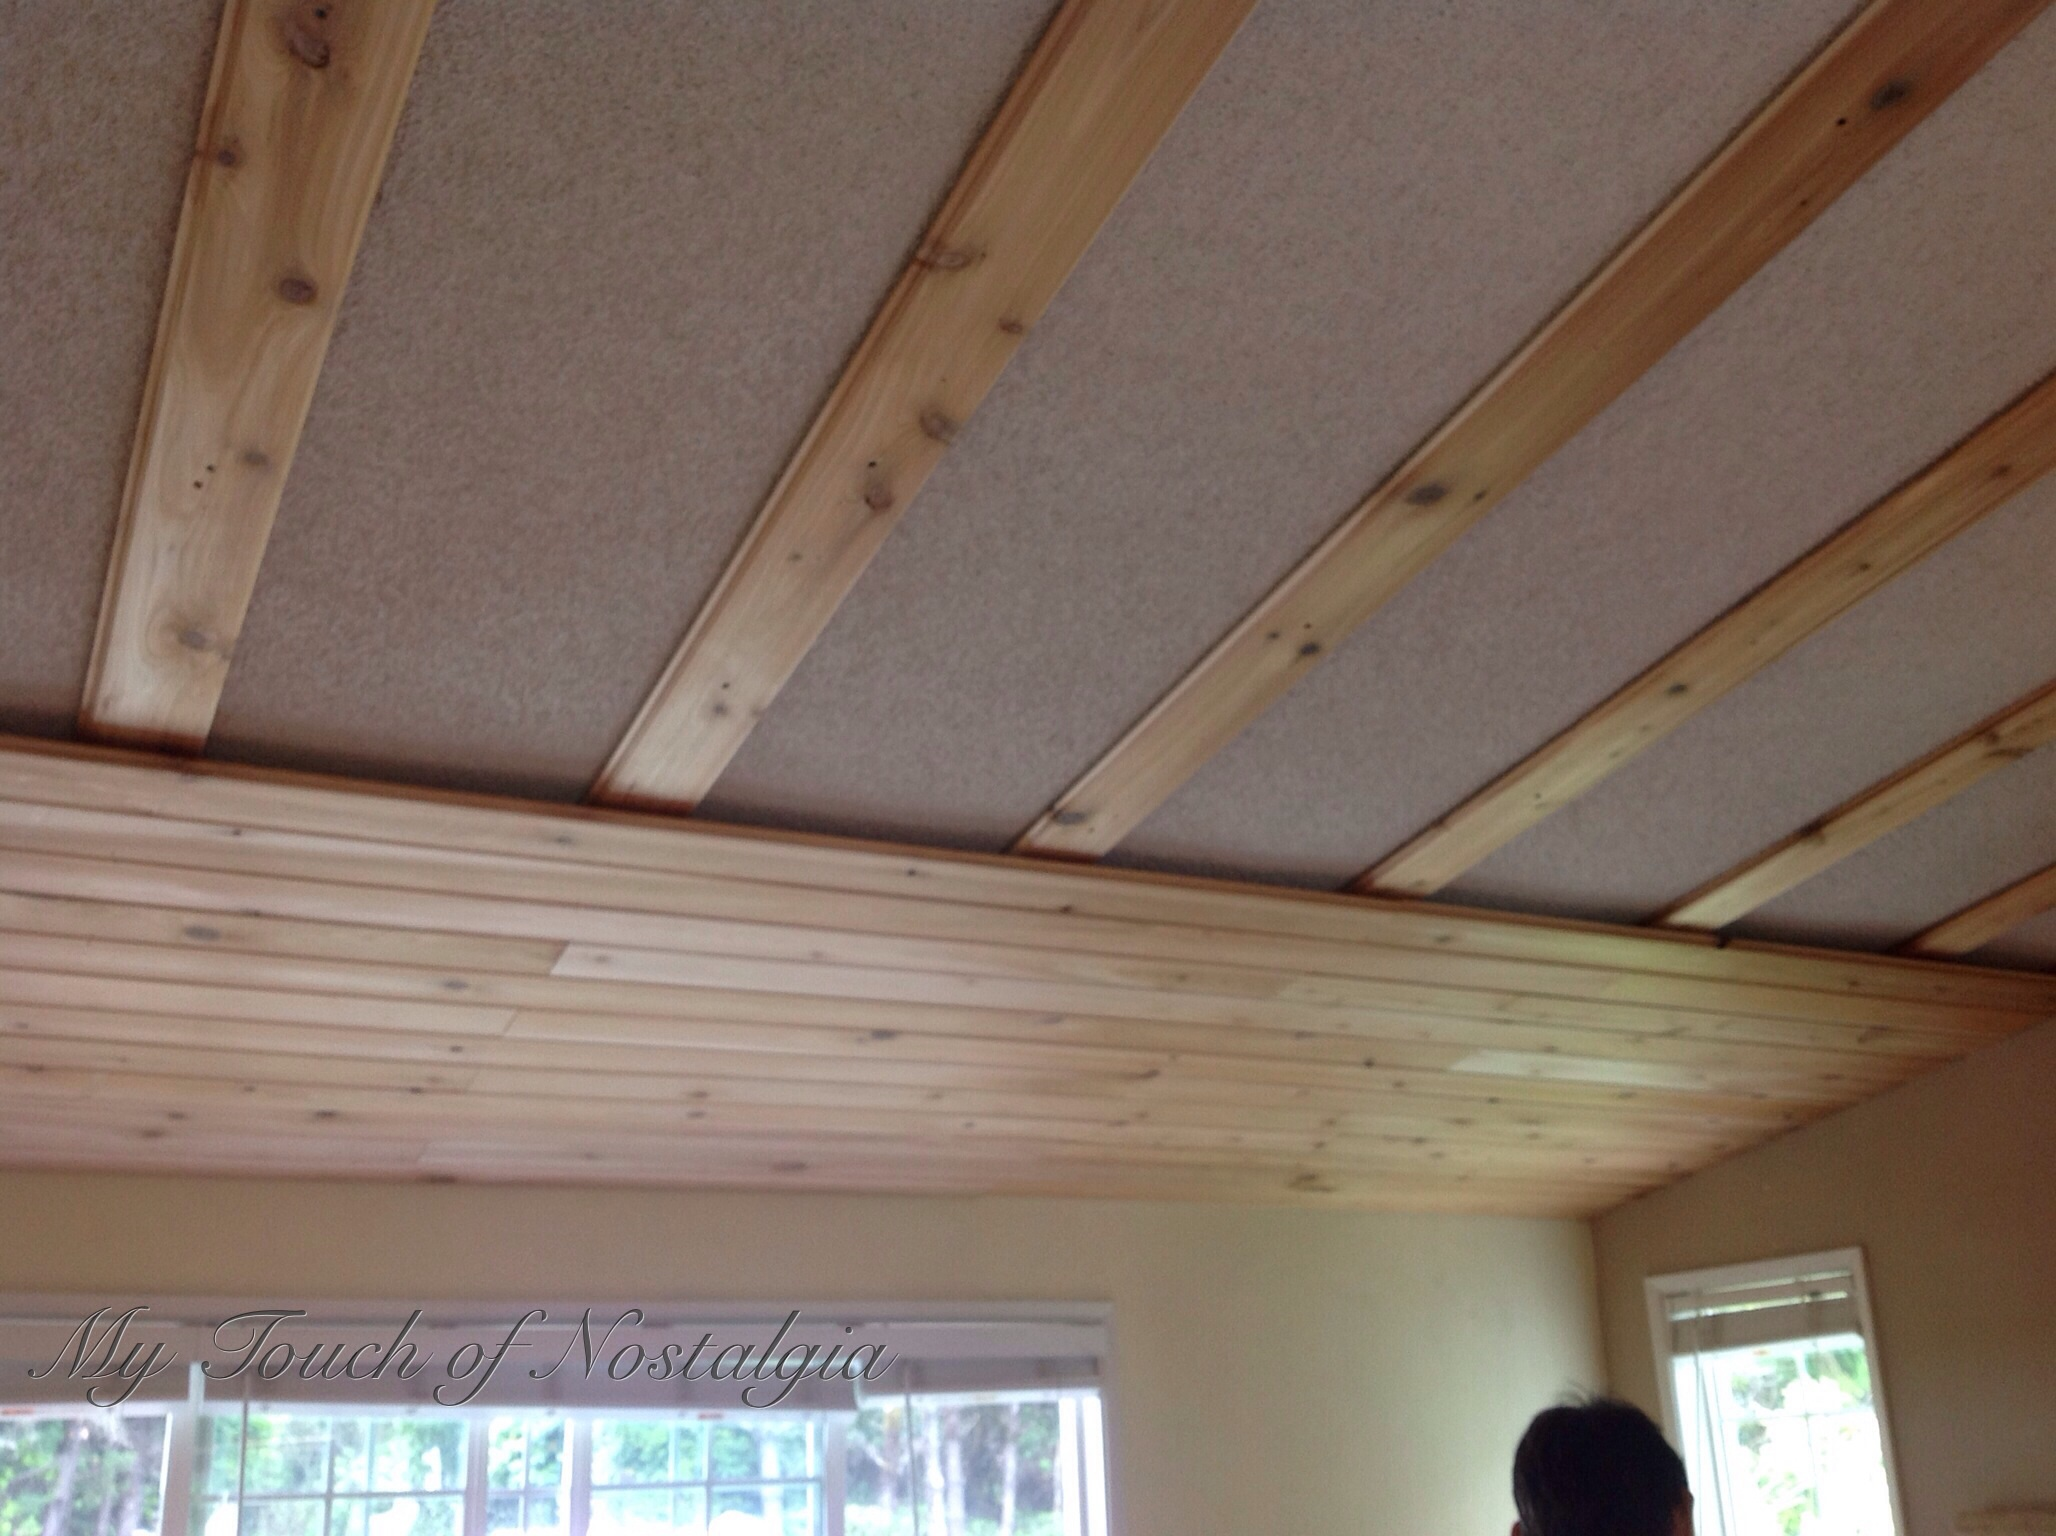 Popcorn Ceilings | My touch of Nostalgia